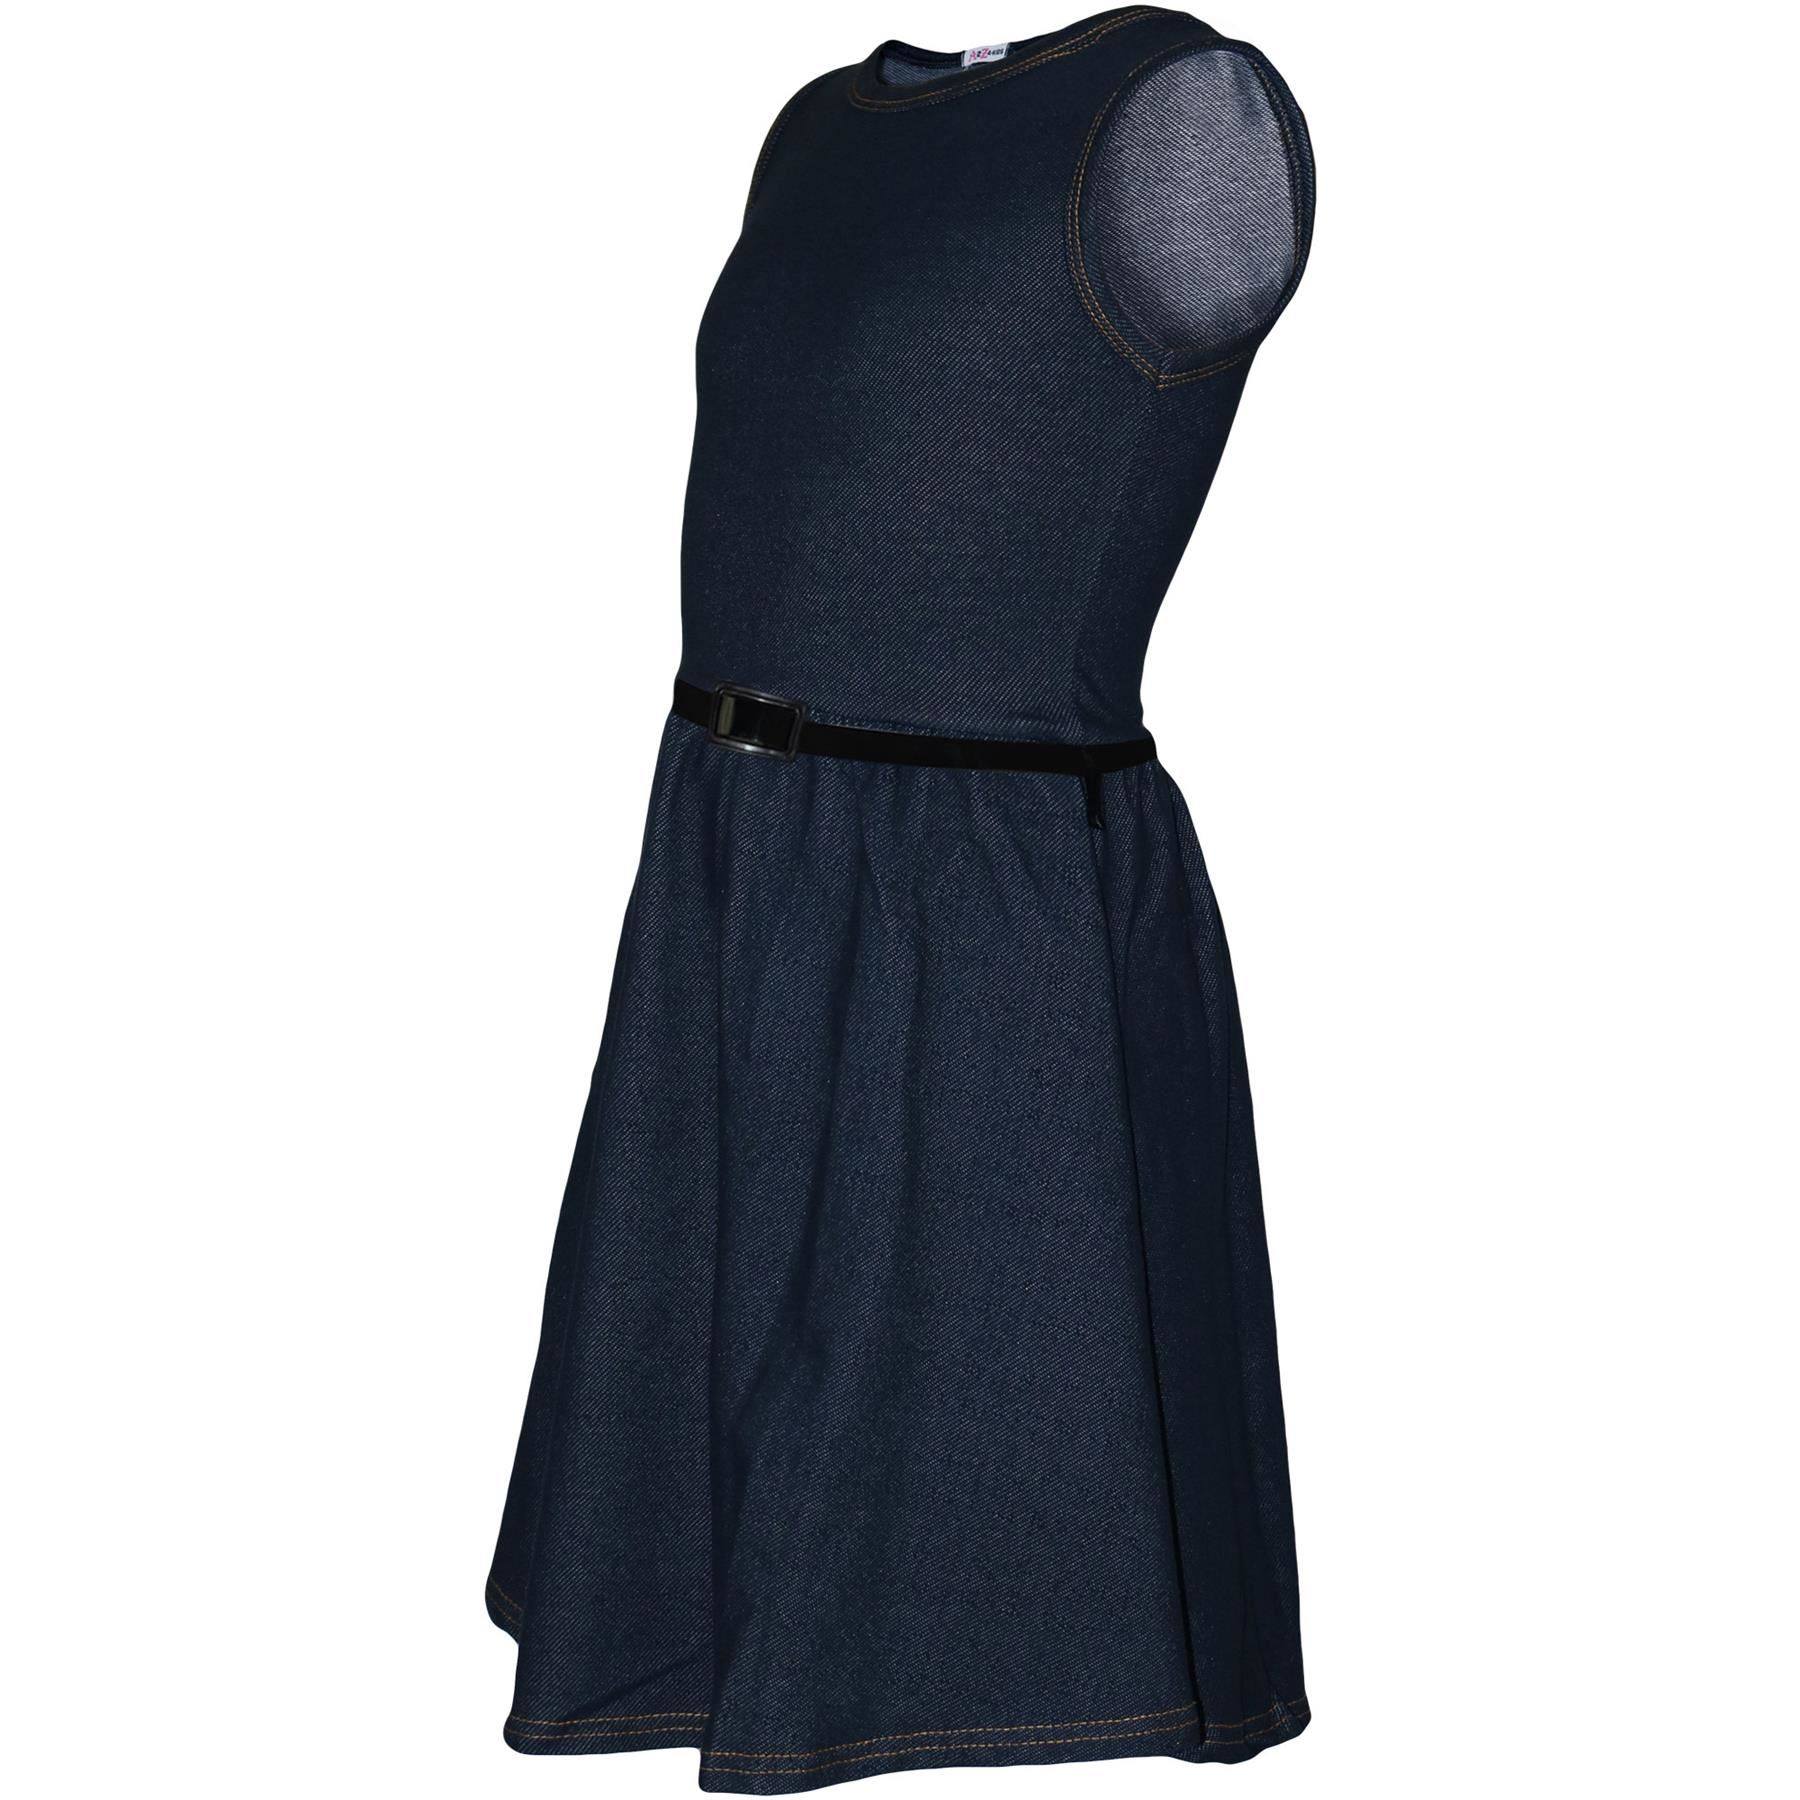 Girls-Skater-Dress-Kids-Party-Dresses-With-Free-Belt-Age-7-8-9-10-11-12-13-Years thumbnail 15